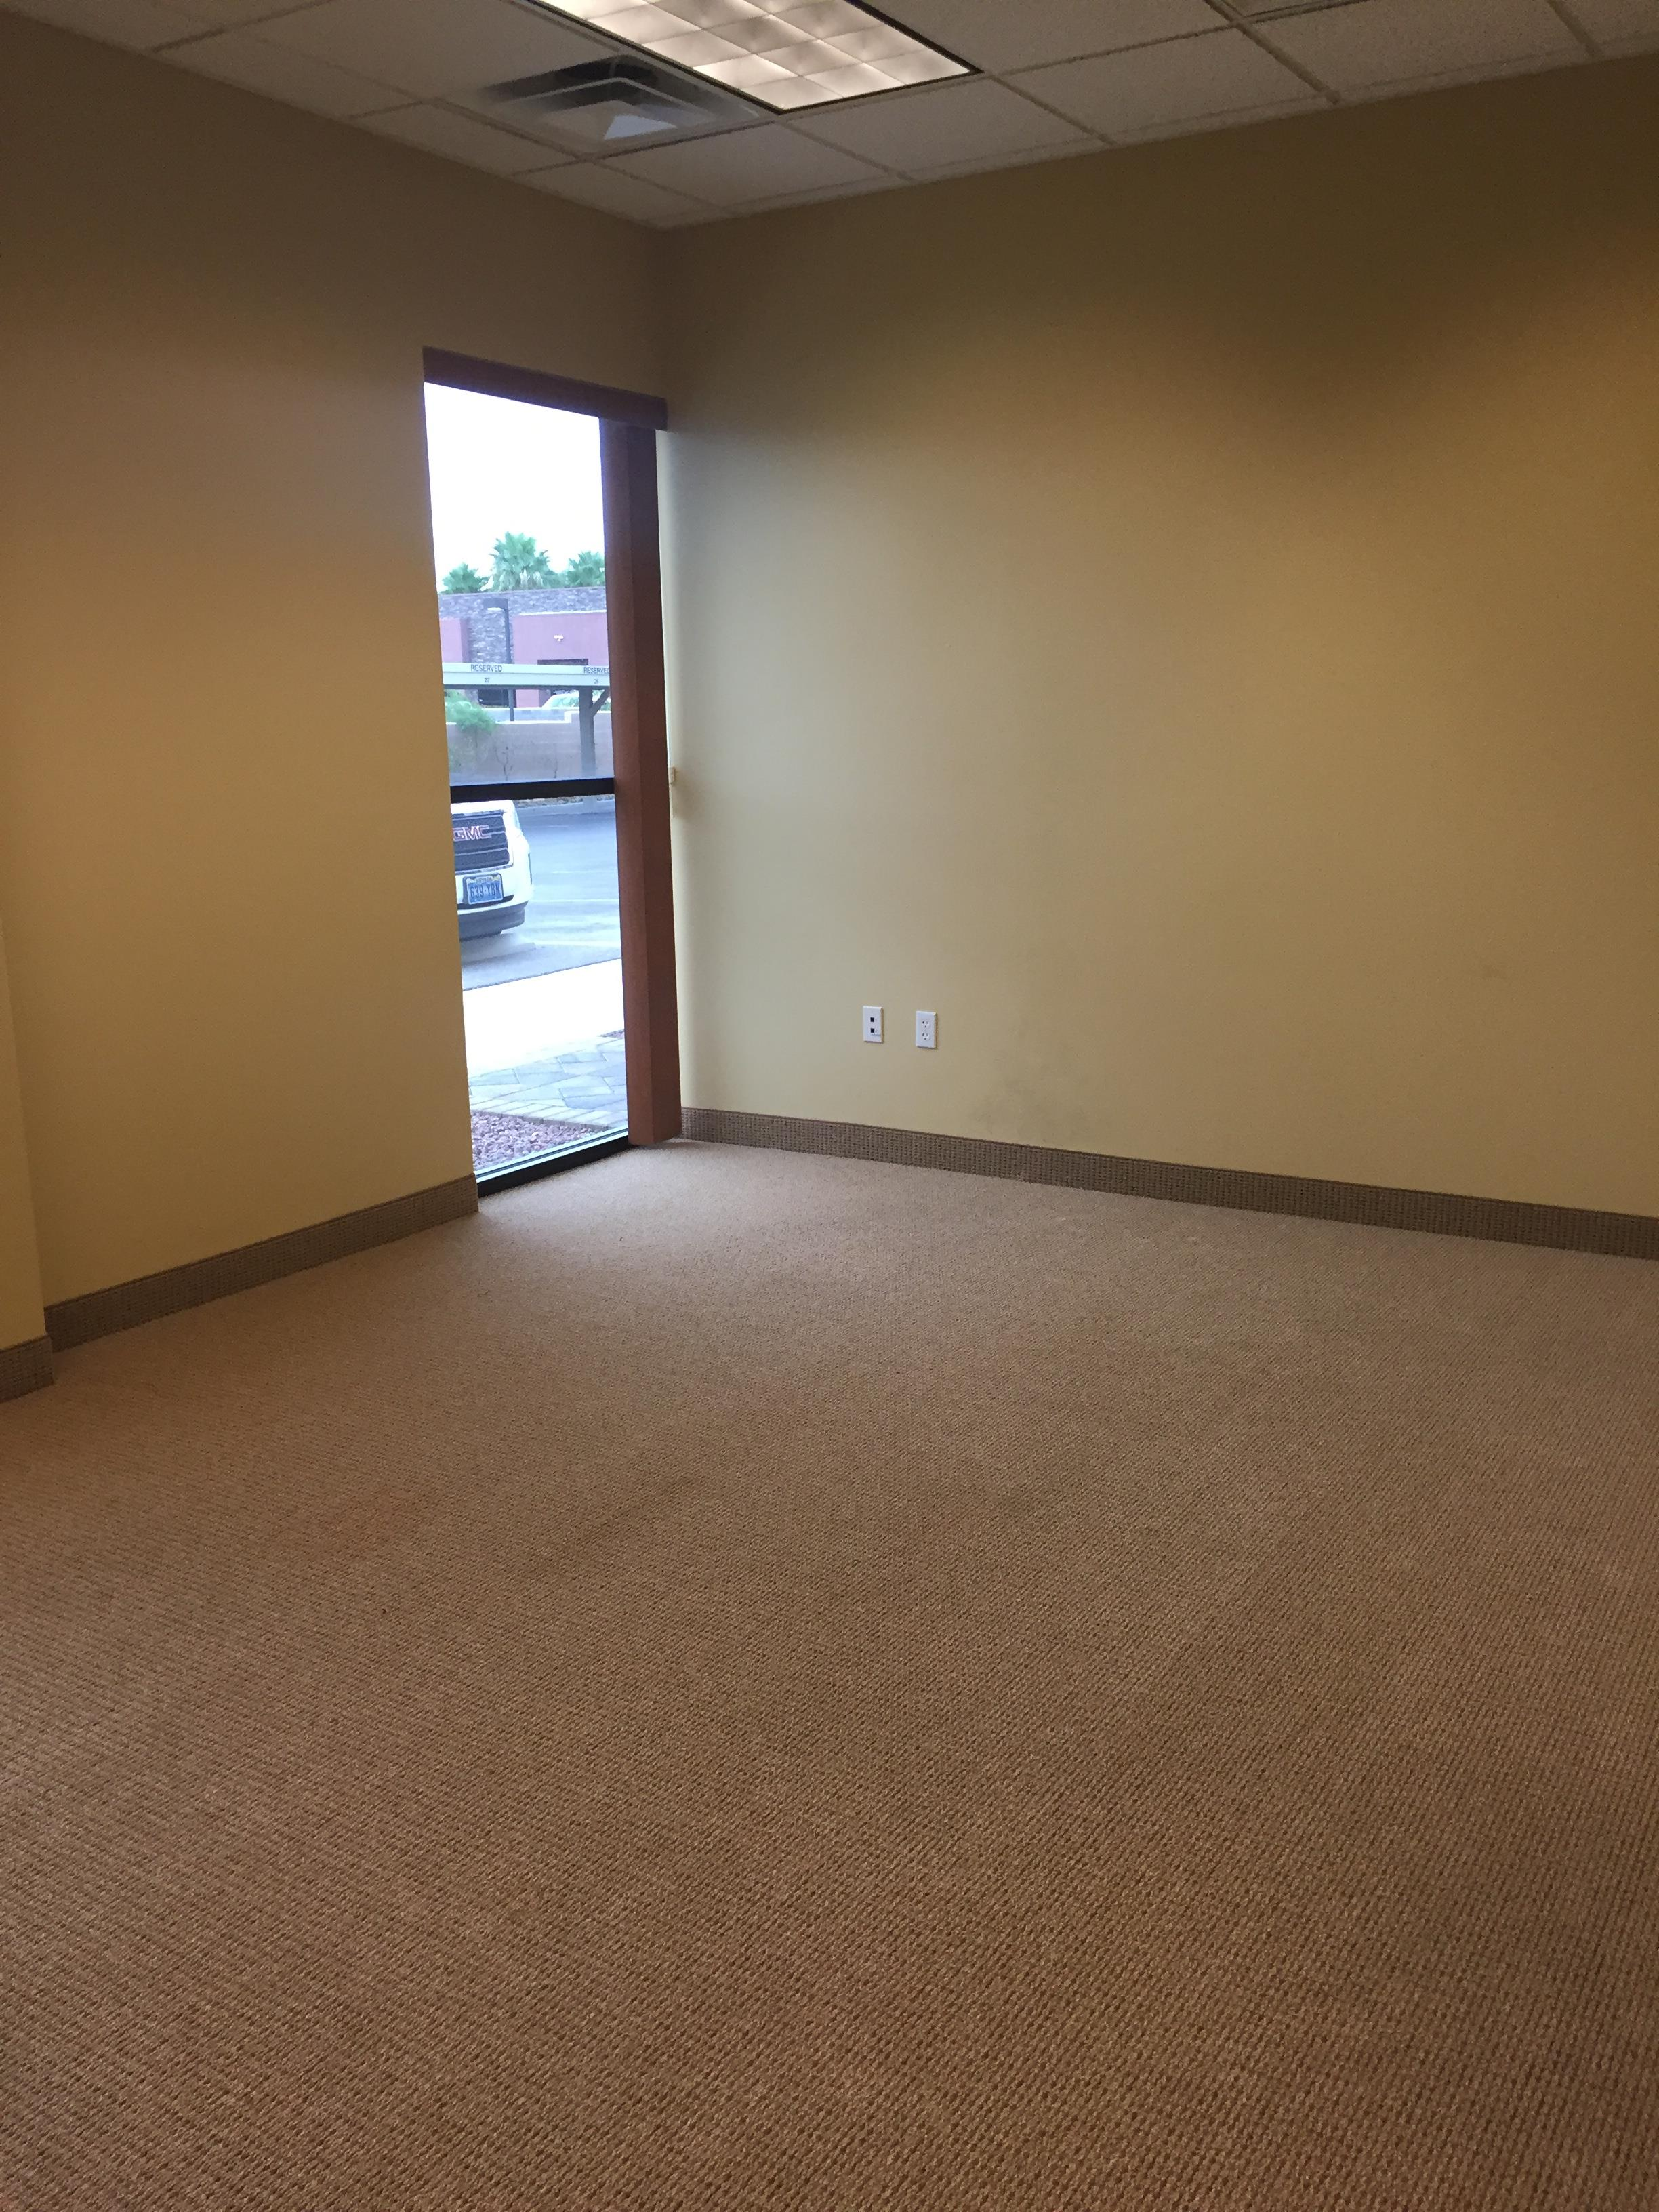 (LVR) South Rainbow Buisness Park - Large Window Office